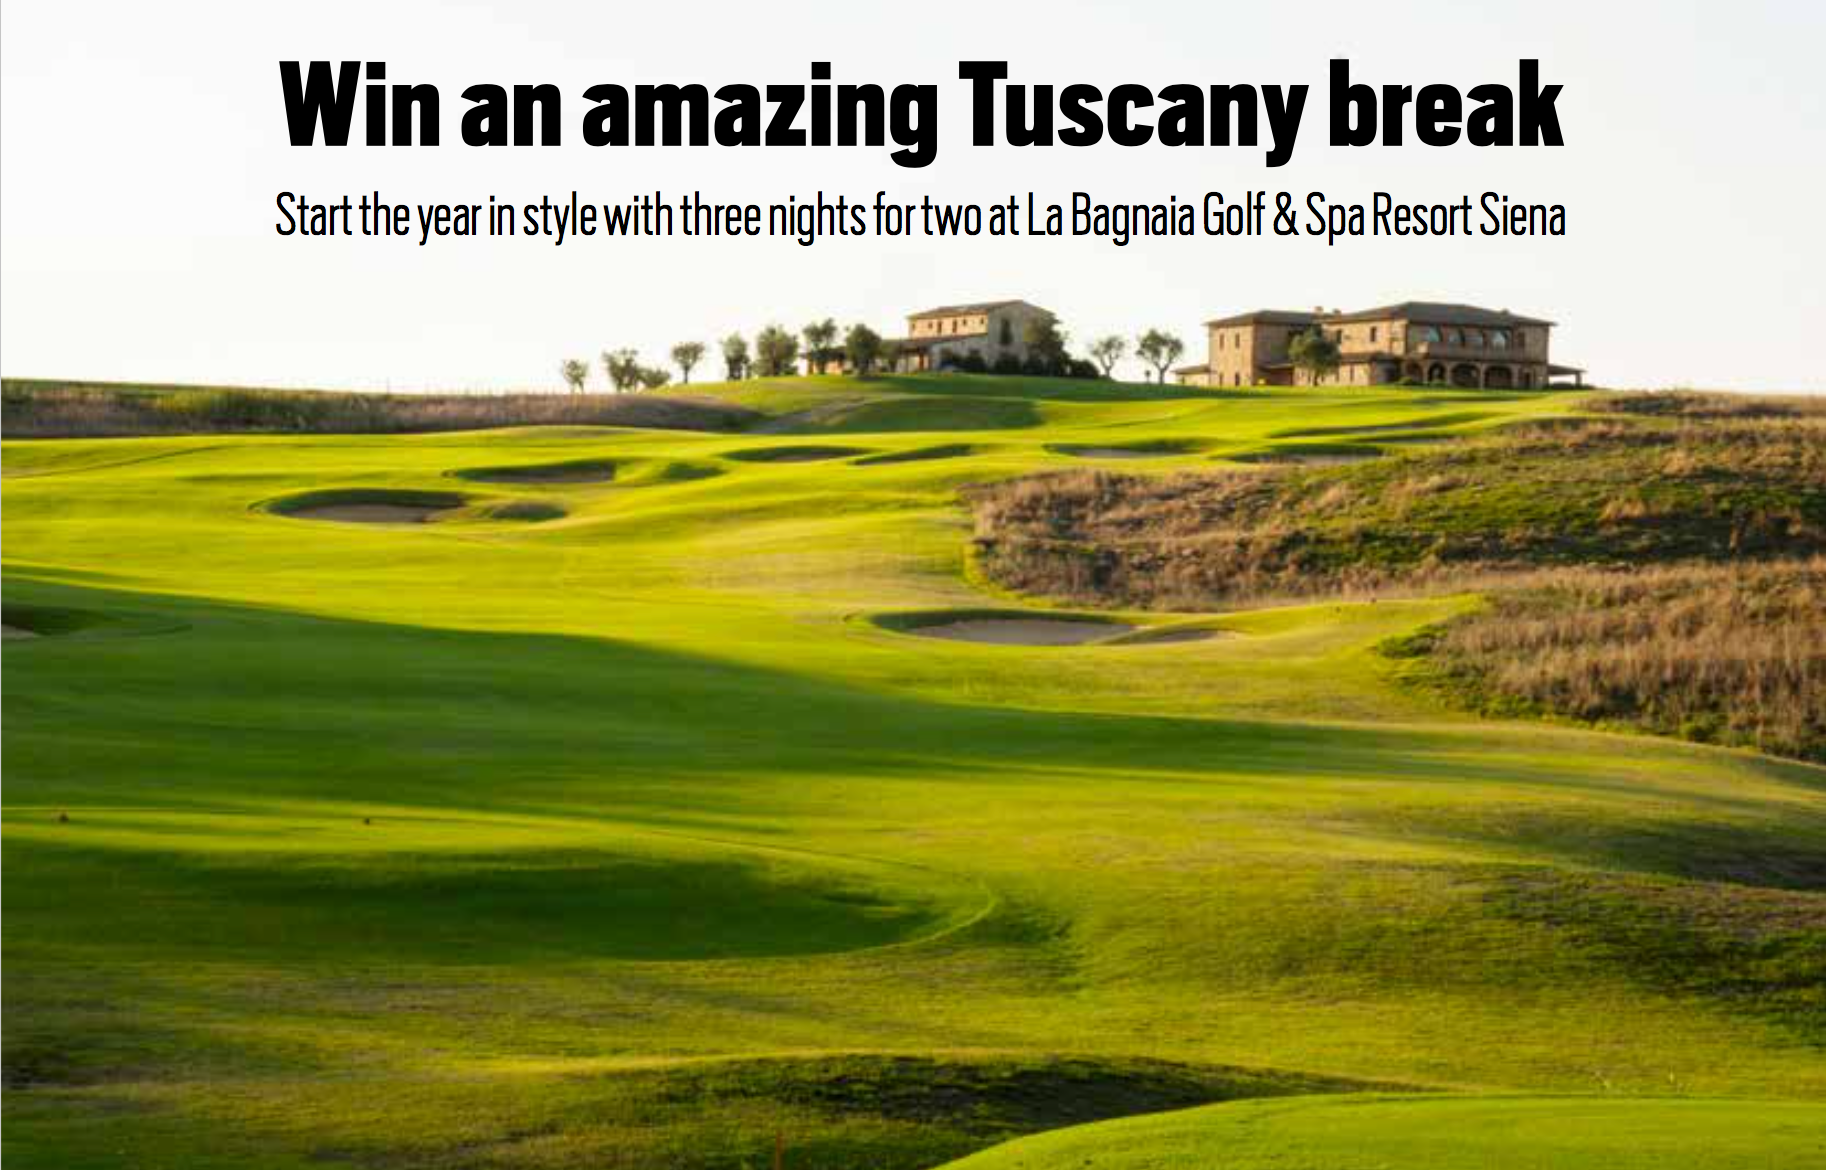 WIN an amazing Tuscany breakW sweepstakes